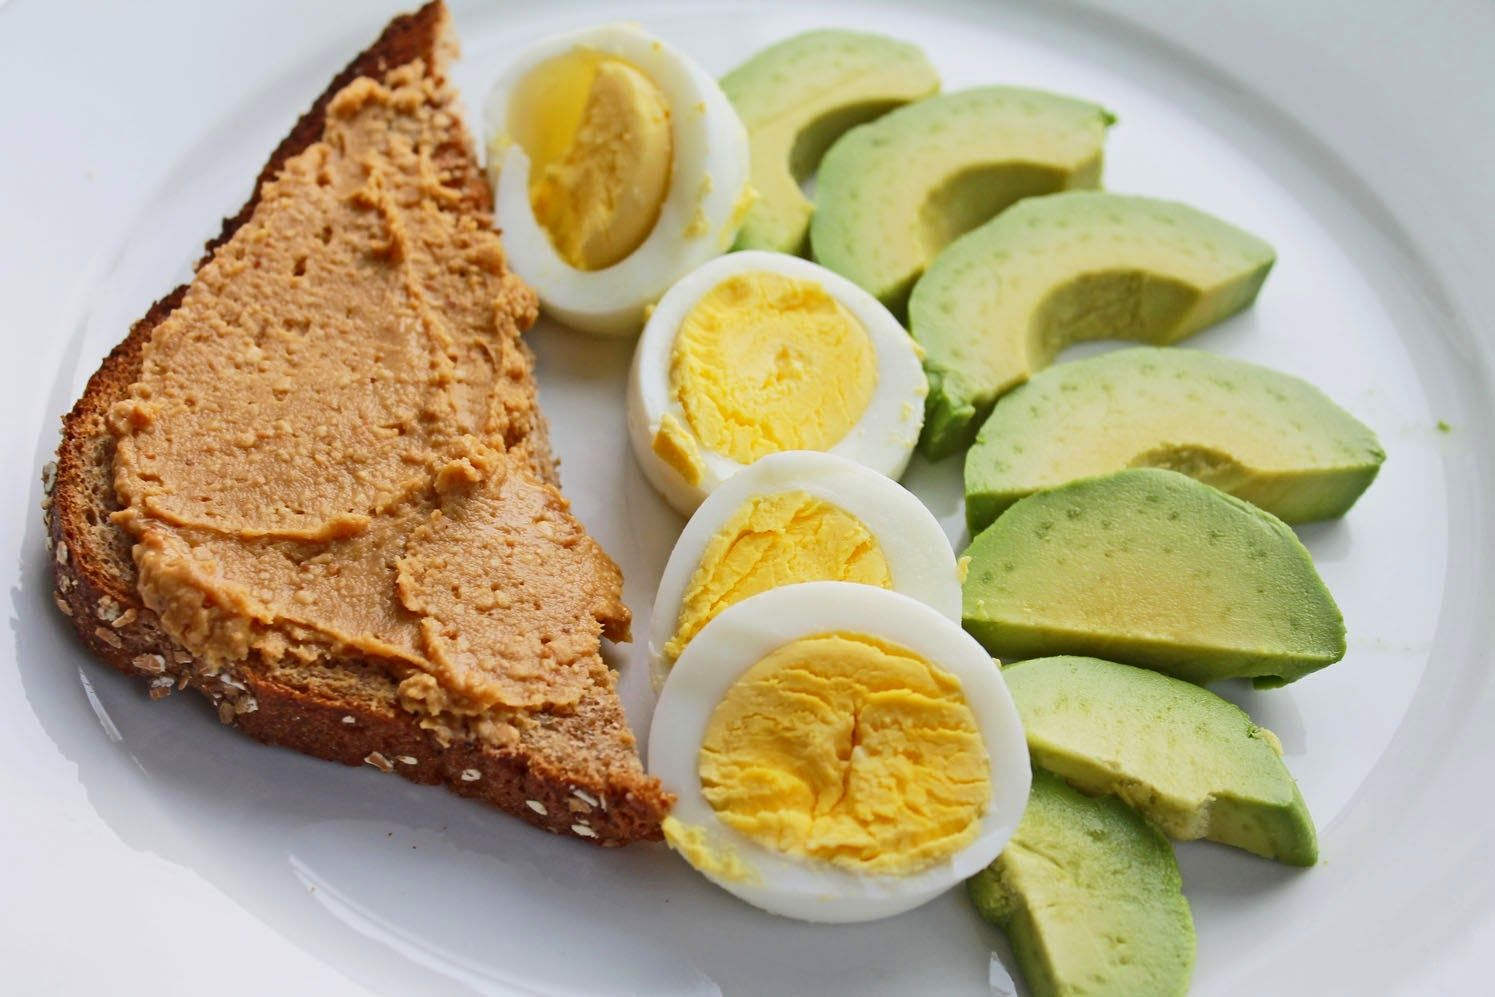 Healthy Breakfast Idea Whole Wheat Toast With All Natural Peanut Butter Hard Boiled Eggs And Avocado Slices From Clean Eating Weight Loss Meal Plan 100